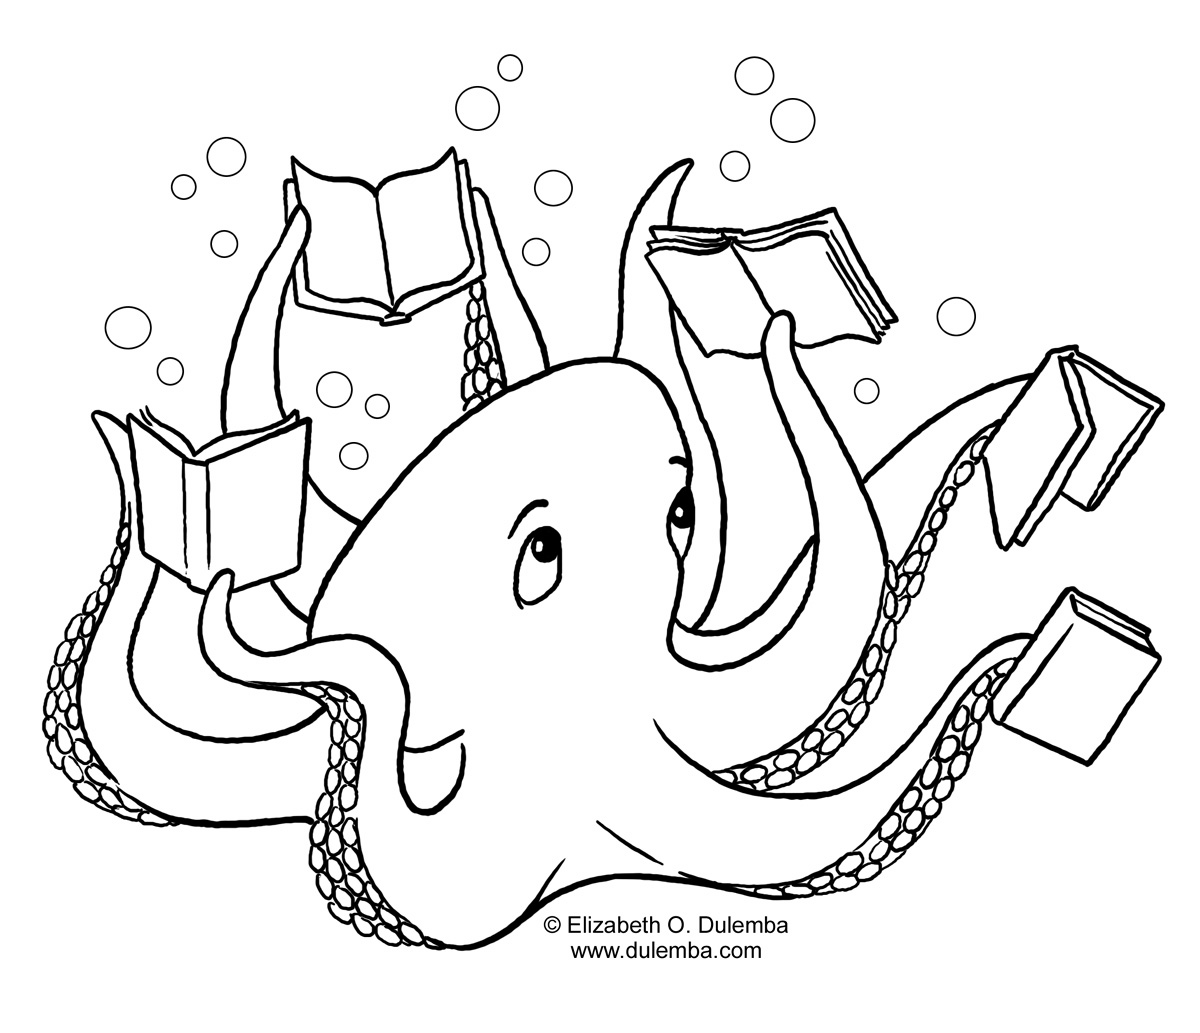 octopus coloring book images